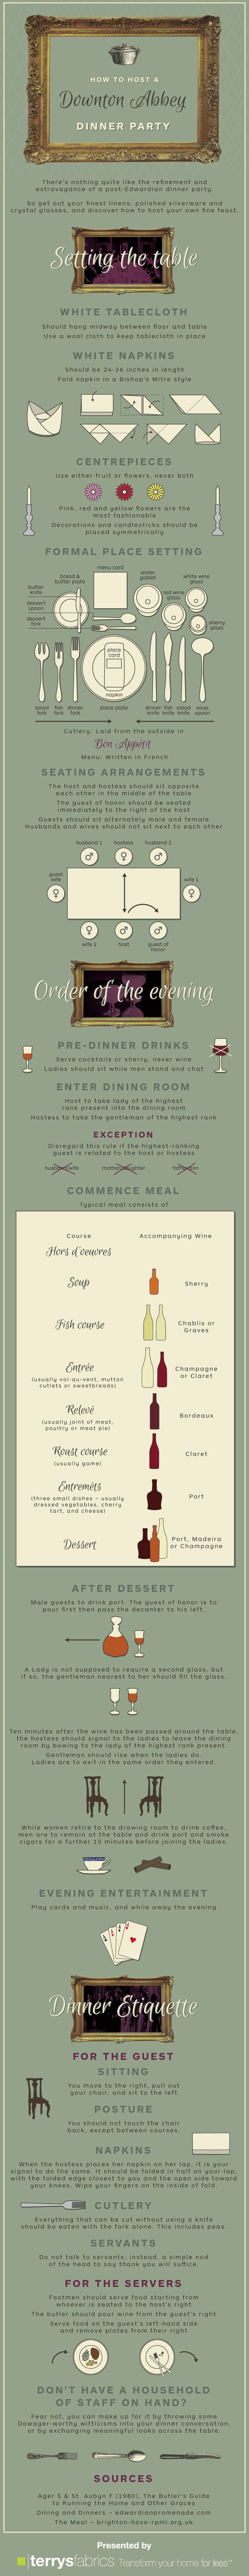 Downton Abbey Dinner Etiquette-Infographic